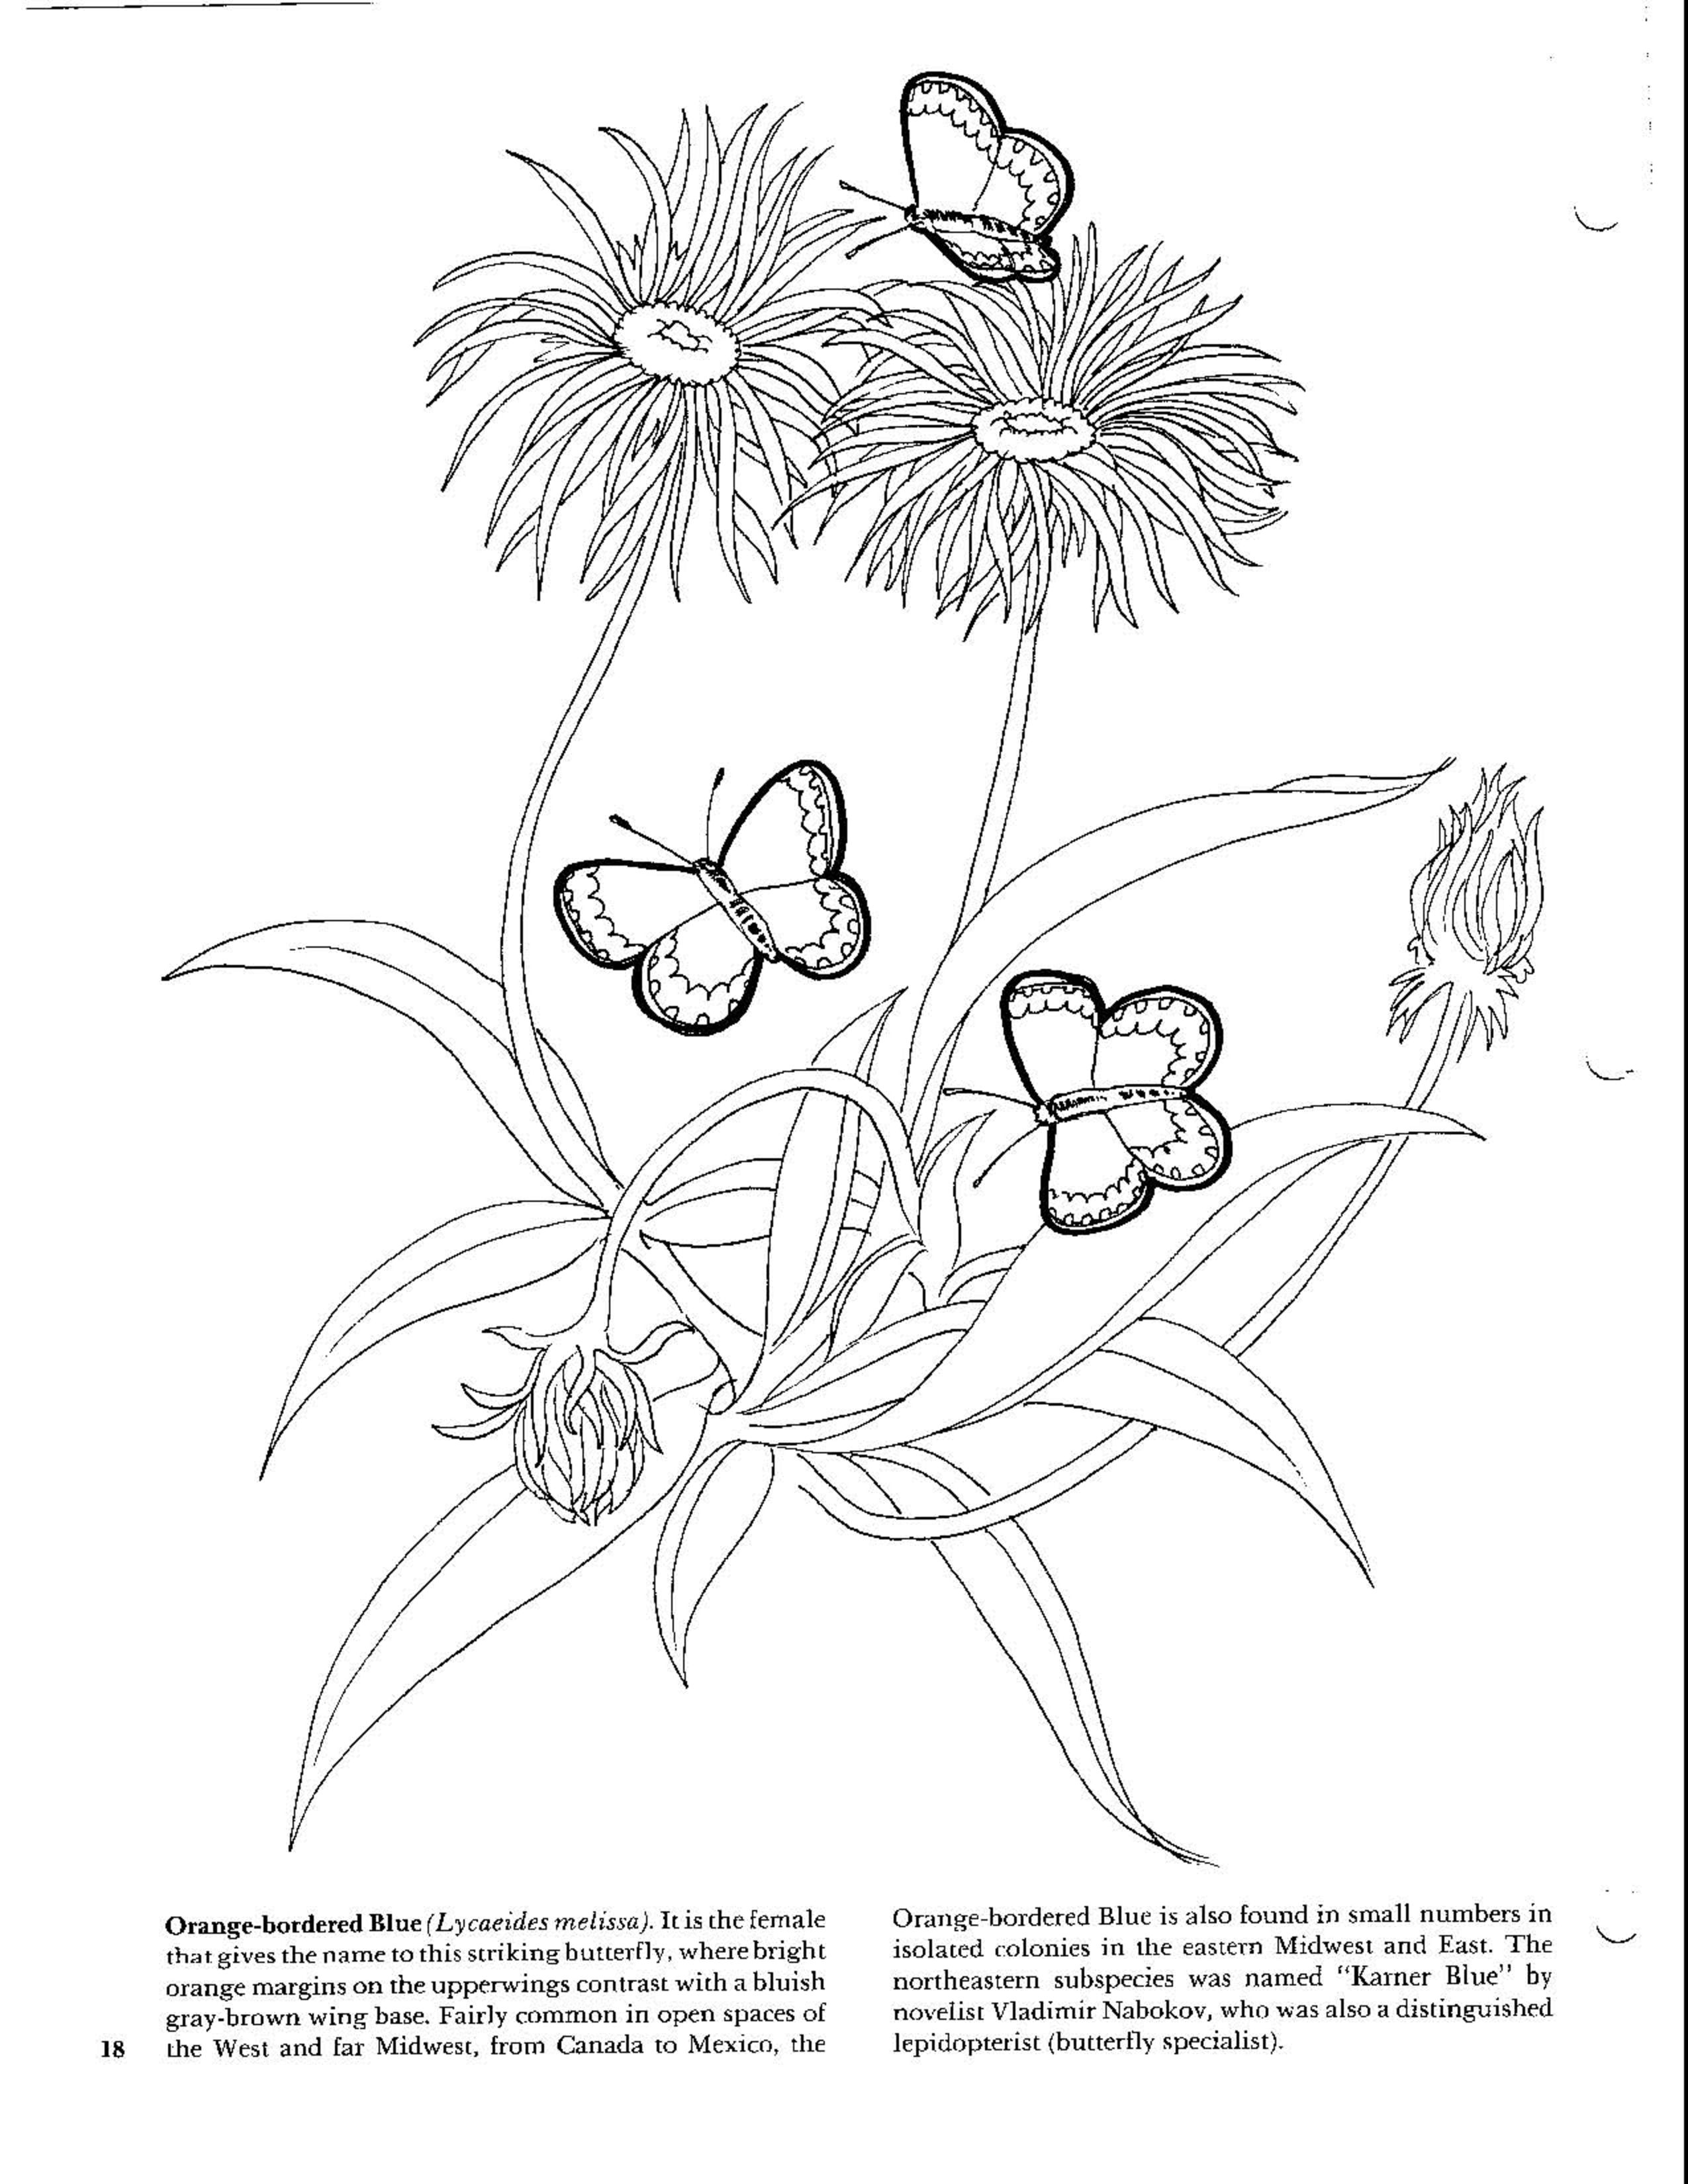 Butterflies Coloring Book Butterfly Coloring Page Coloring Pages Animal Coloring Pages [ 3300 x 2550 Pixel ]